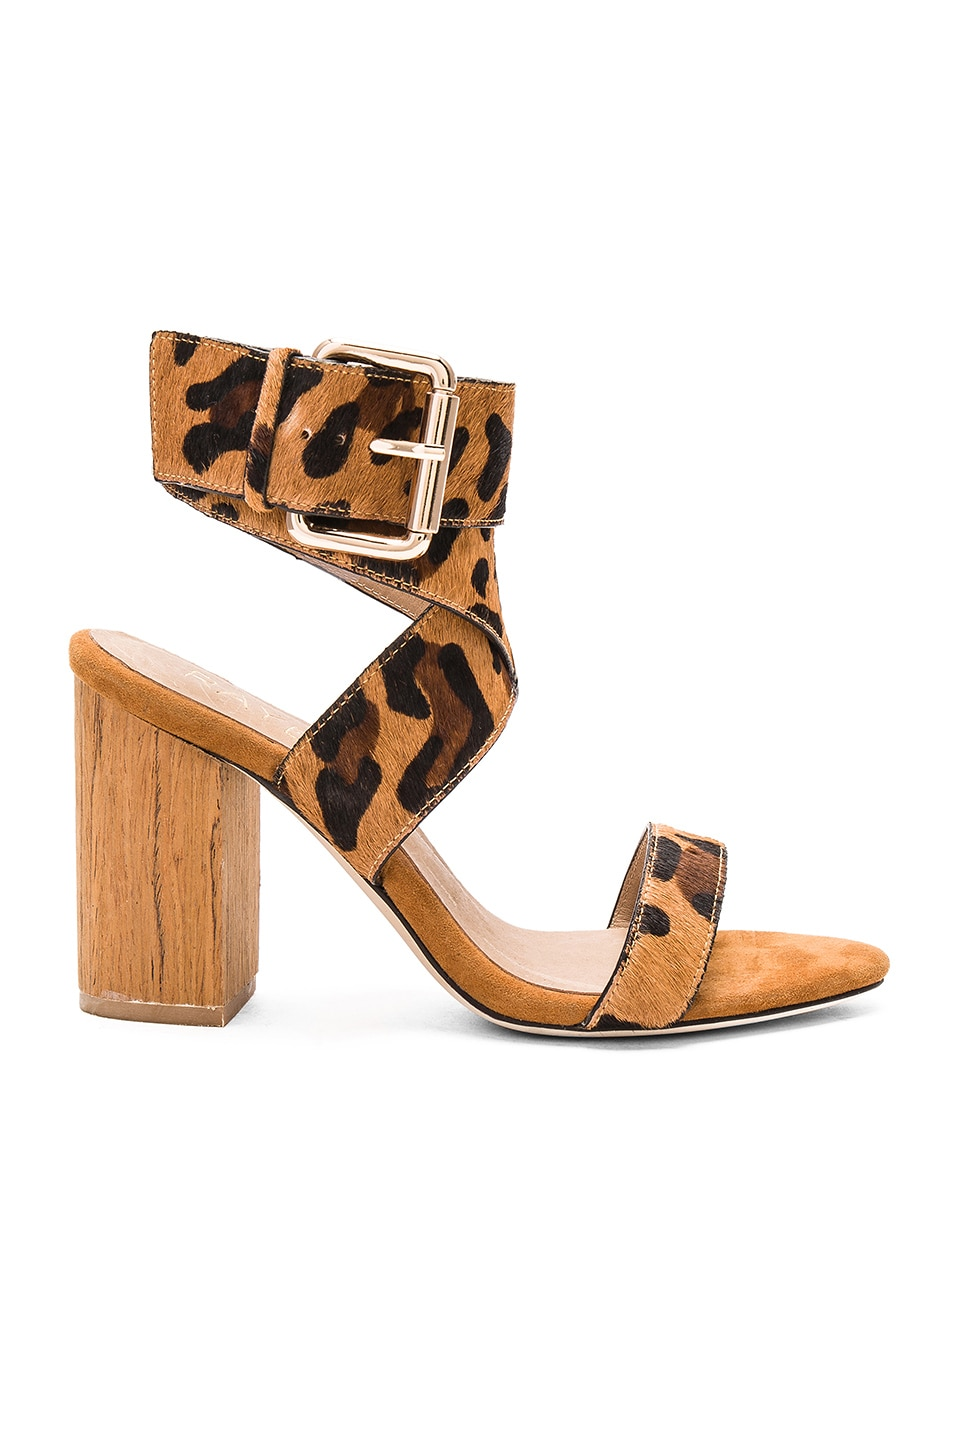 RAYE Lexie Cow Hair Heel in Tan Leopard